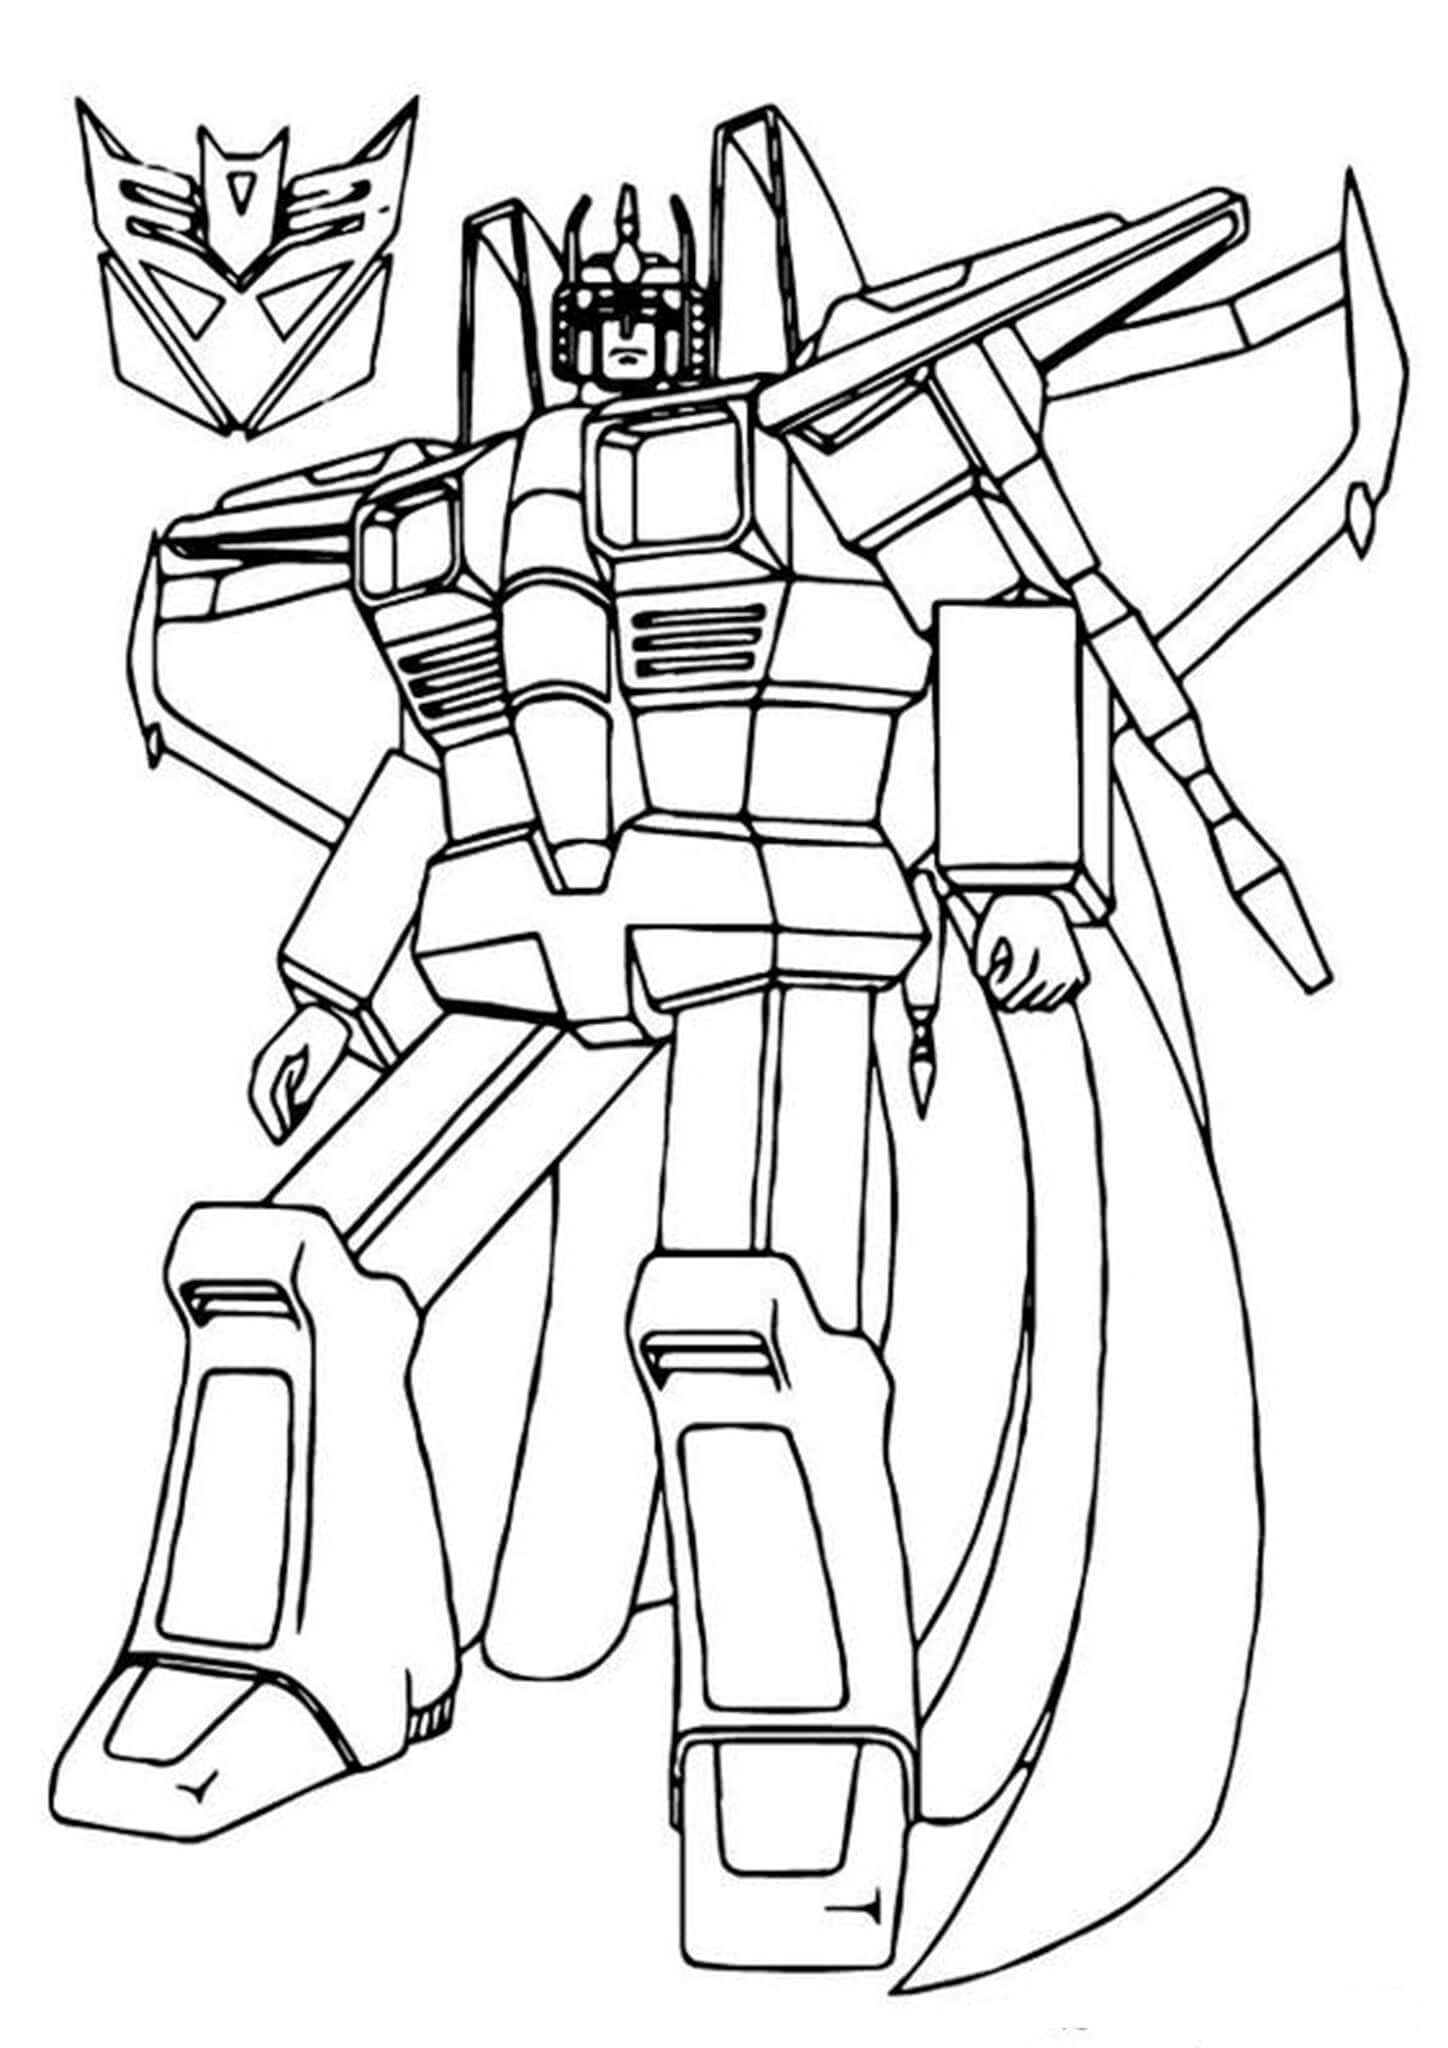 Free Easy To Print Transformers Coloring Pages Transformers Coloring Pages Superhero Coloring Pages Cartoon Coloring Pages